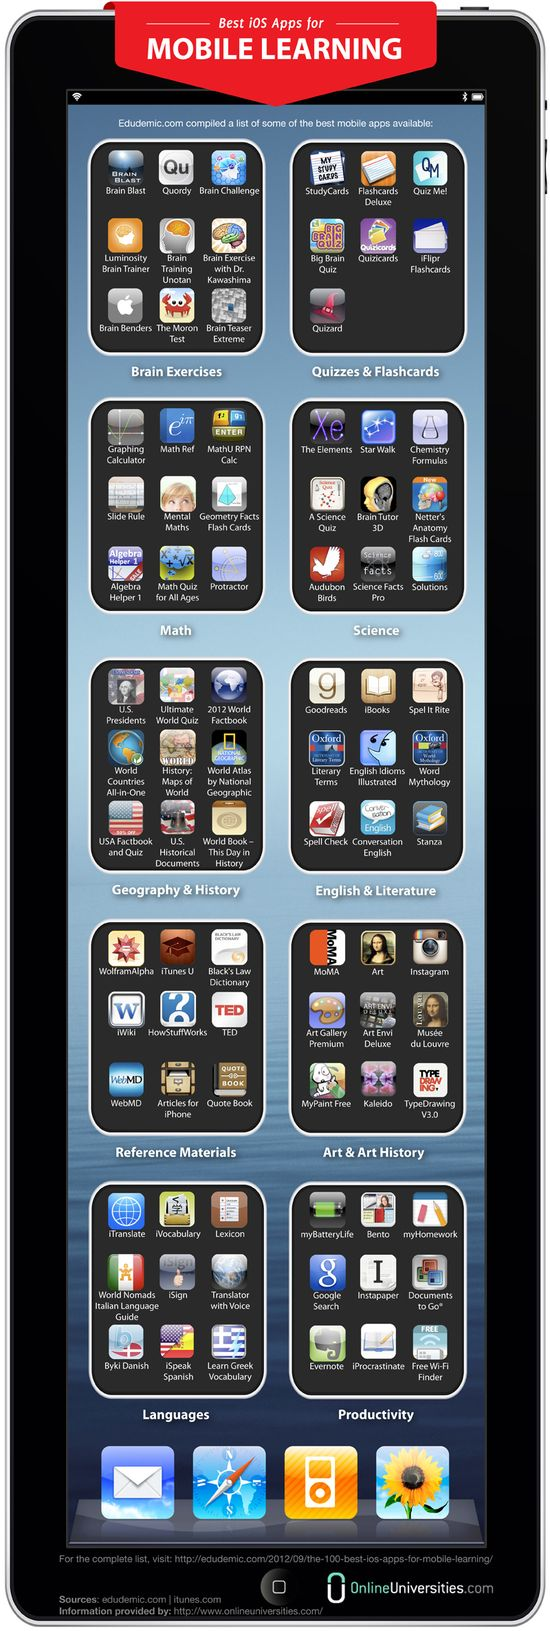 Best-iOS-Apps-for-Mobile-Learning-800